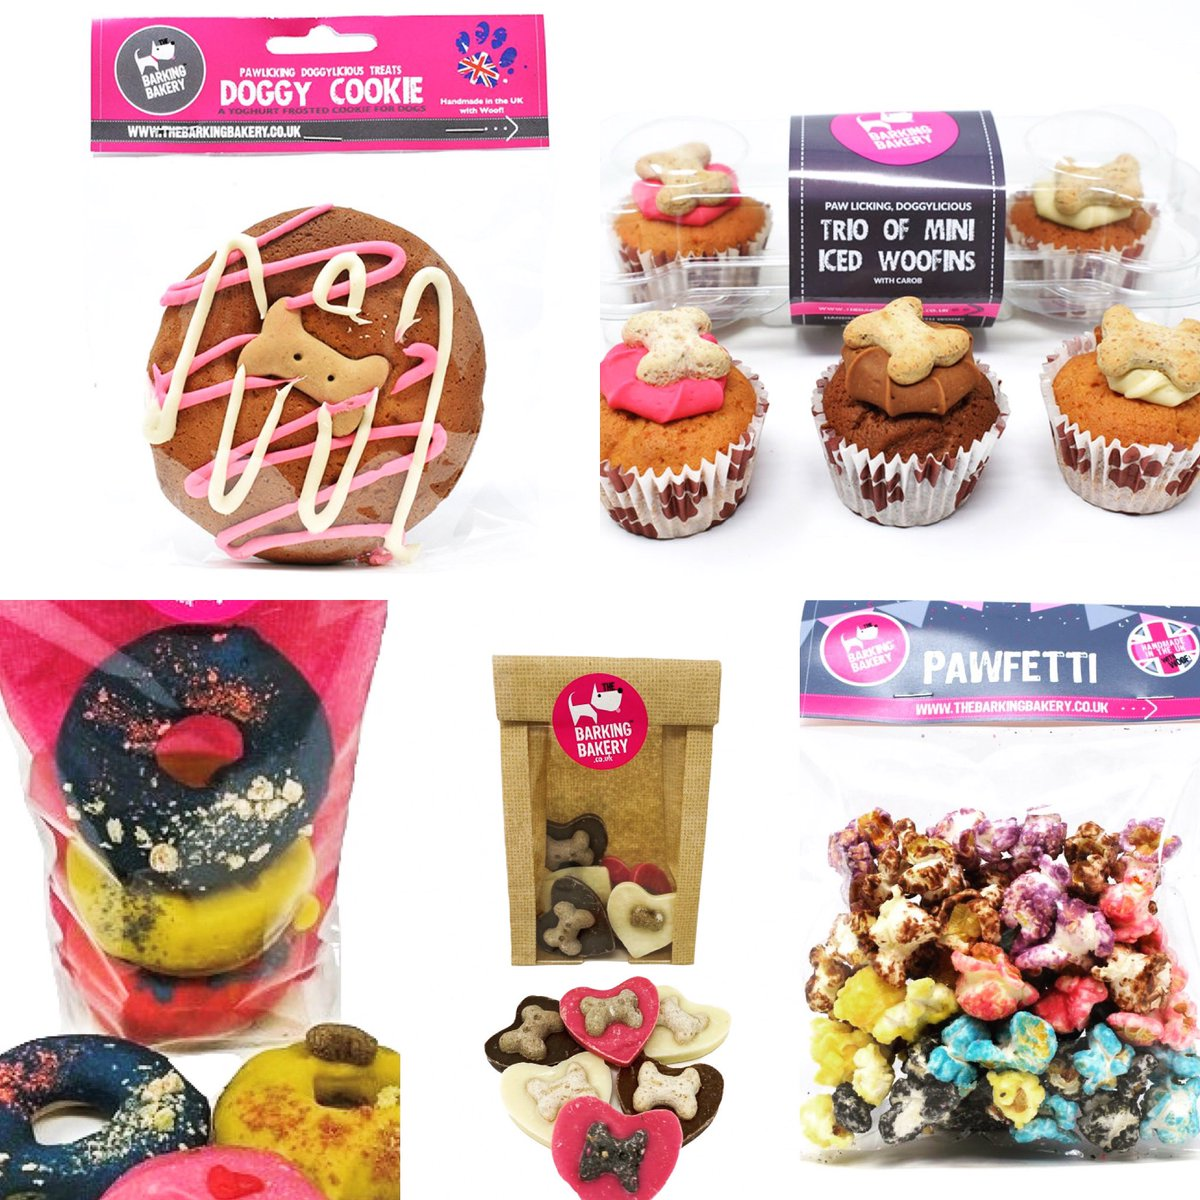 New #Sweet Treat Box 💜 While Stocks Last  #poochboutique #smallbusiness #lovecamberley #shopping #shop #sweettreats #sweettreat #dogtreats #dog #dogs #pooch #doggo #doggy #doggie #doglife #dogsoftwitter #dogsofinstagram  #donuts #cupcakes #cookies #popcorn